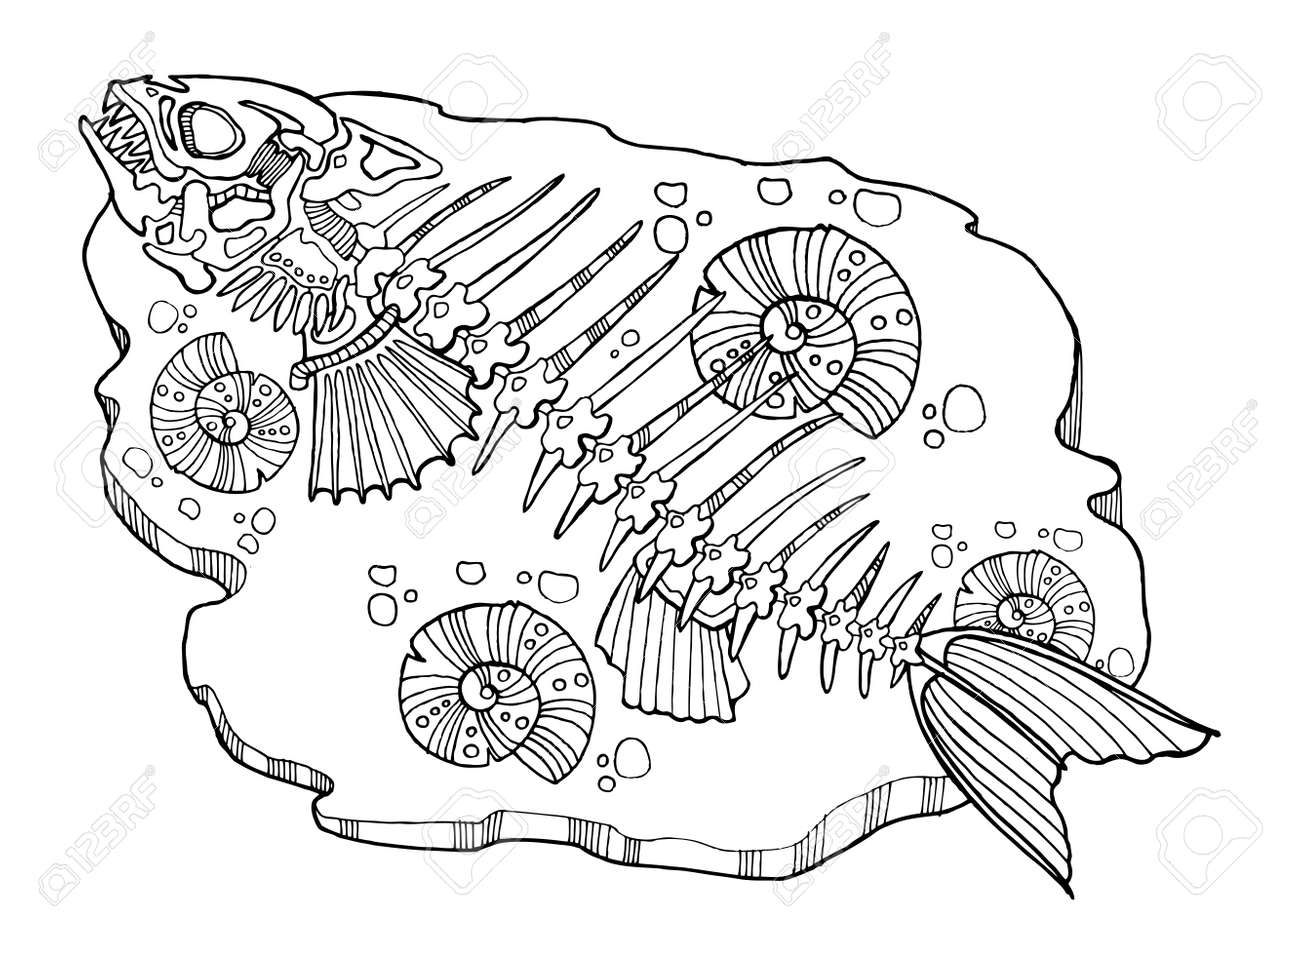 Skeleton Of Fish Coloring Book Vector Illustration. Lace Pattern ...